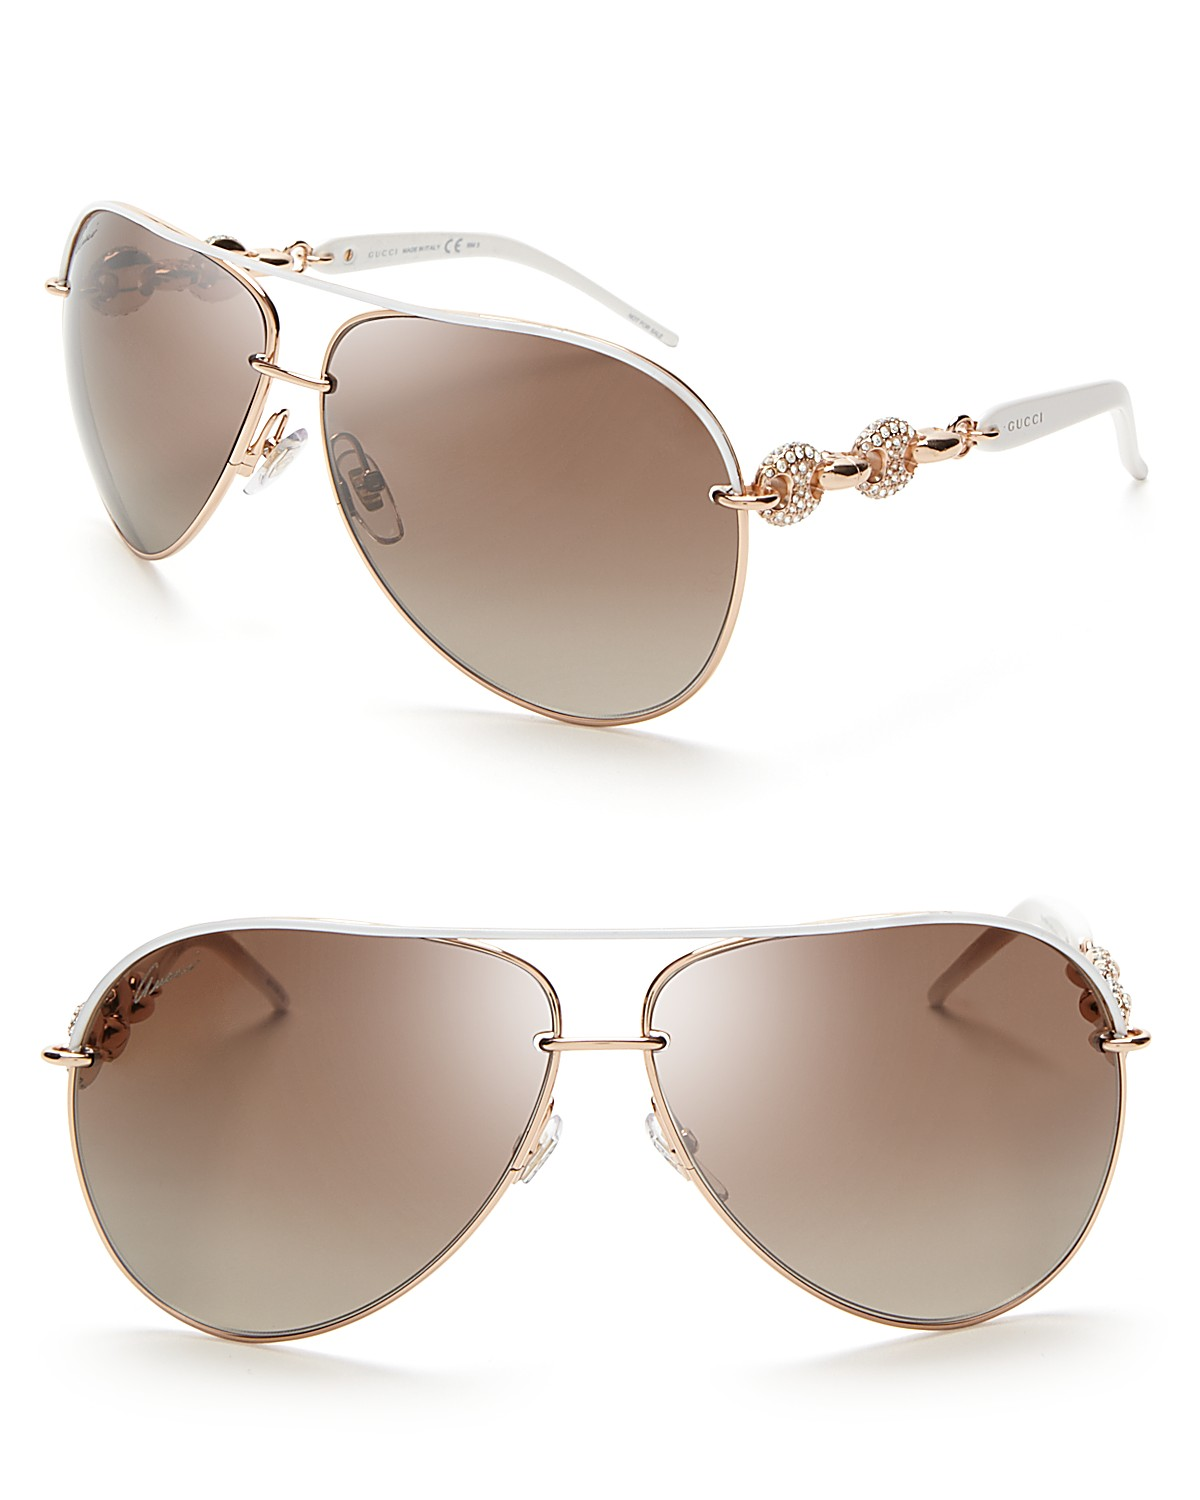 Gucci Chain Link Aviator Sunglasses with Crystals   Bloomingdale's